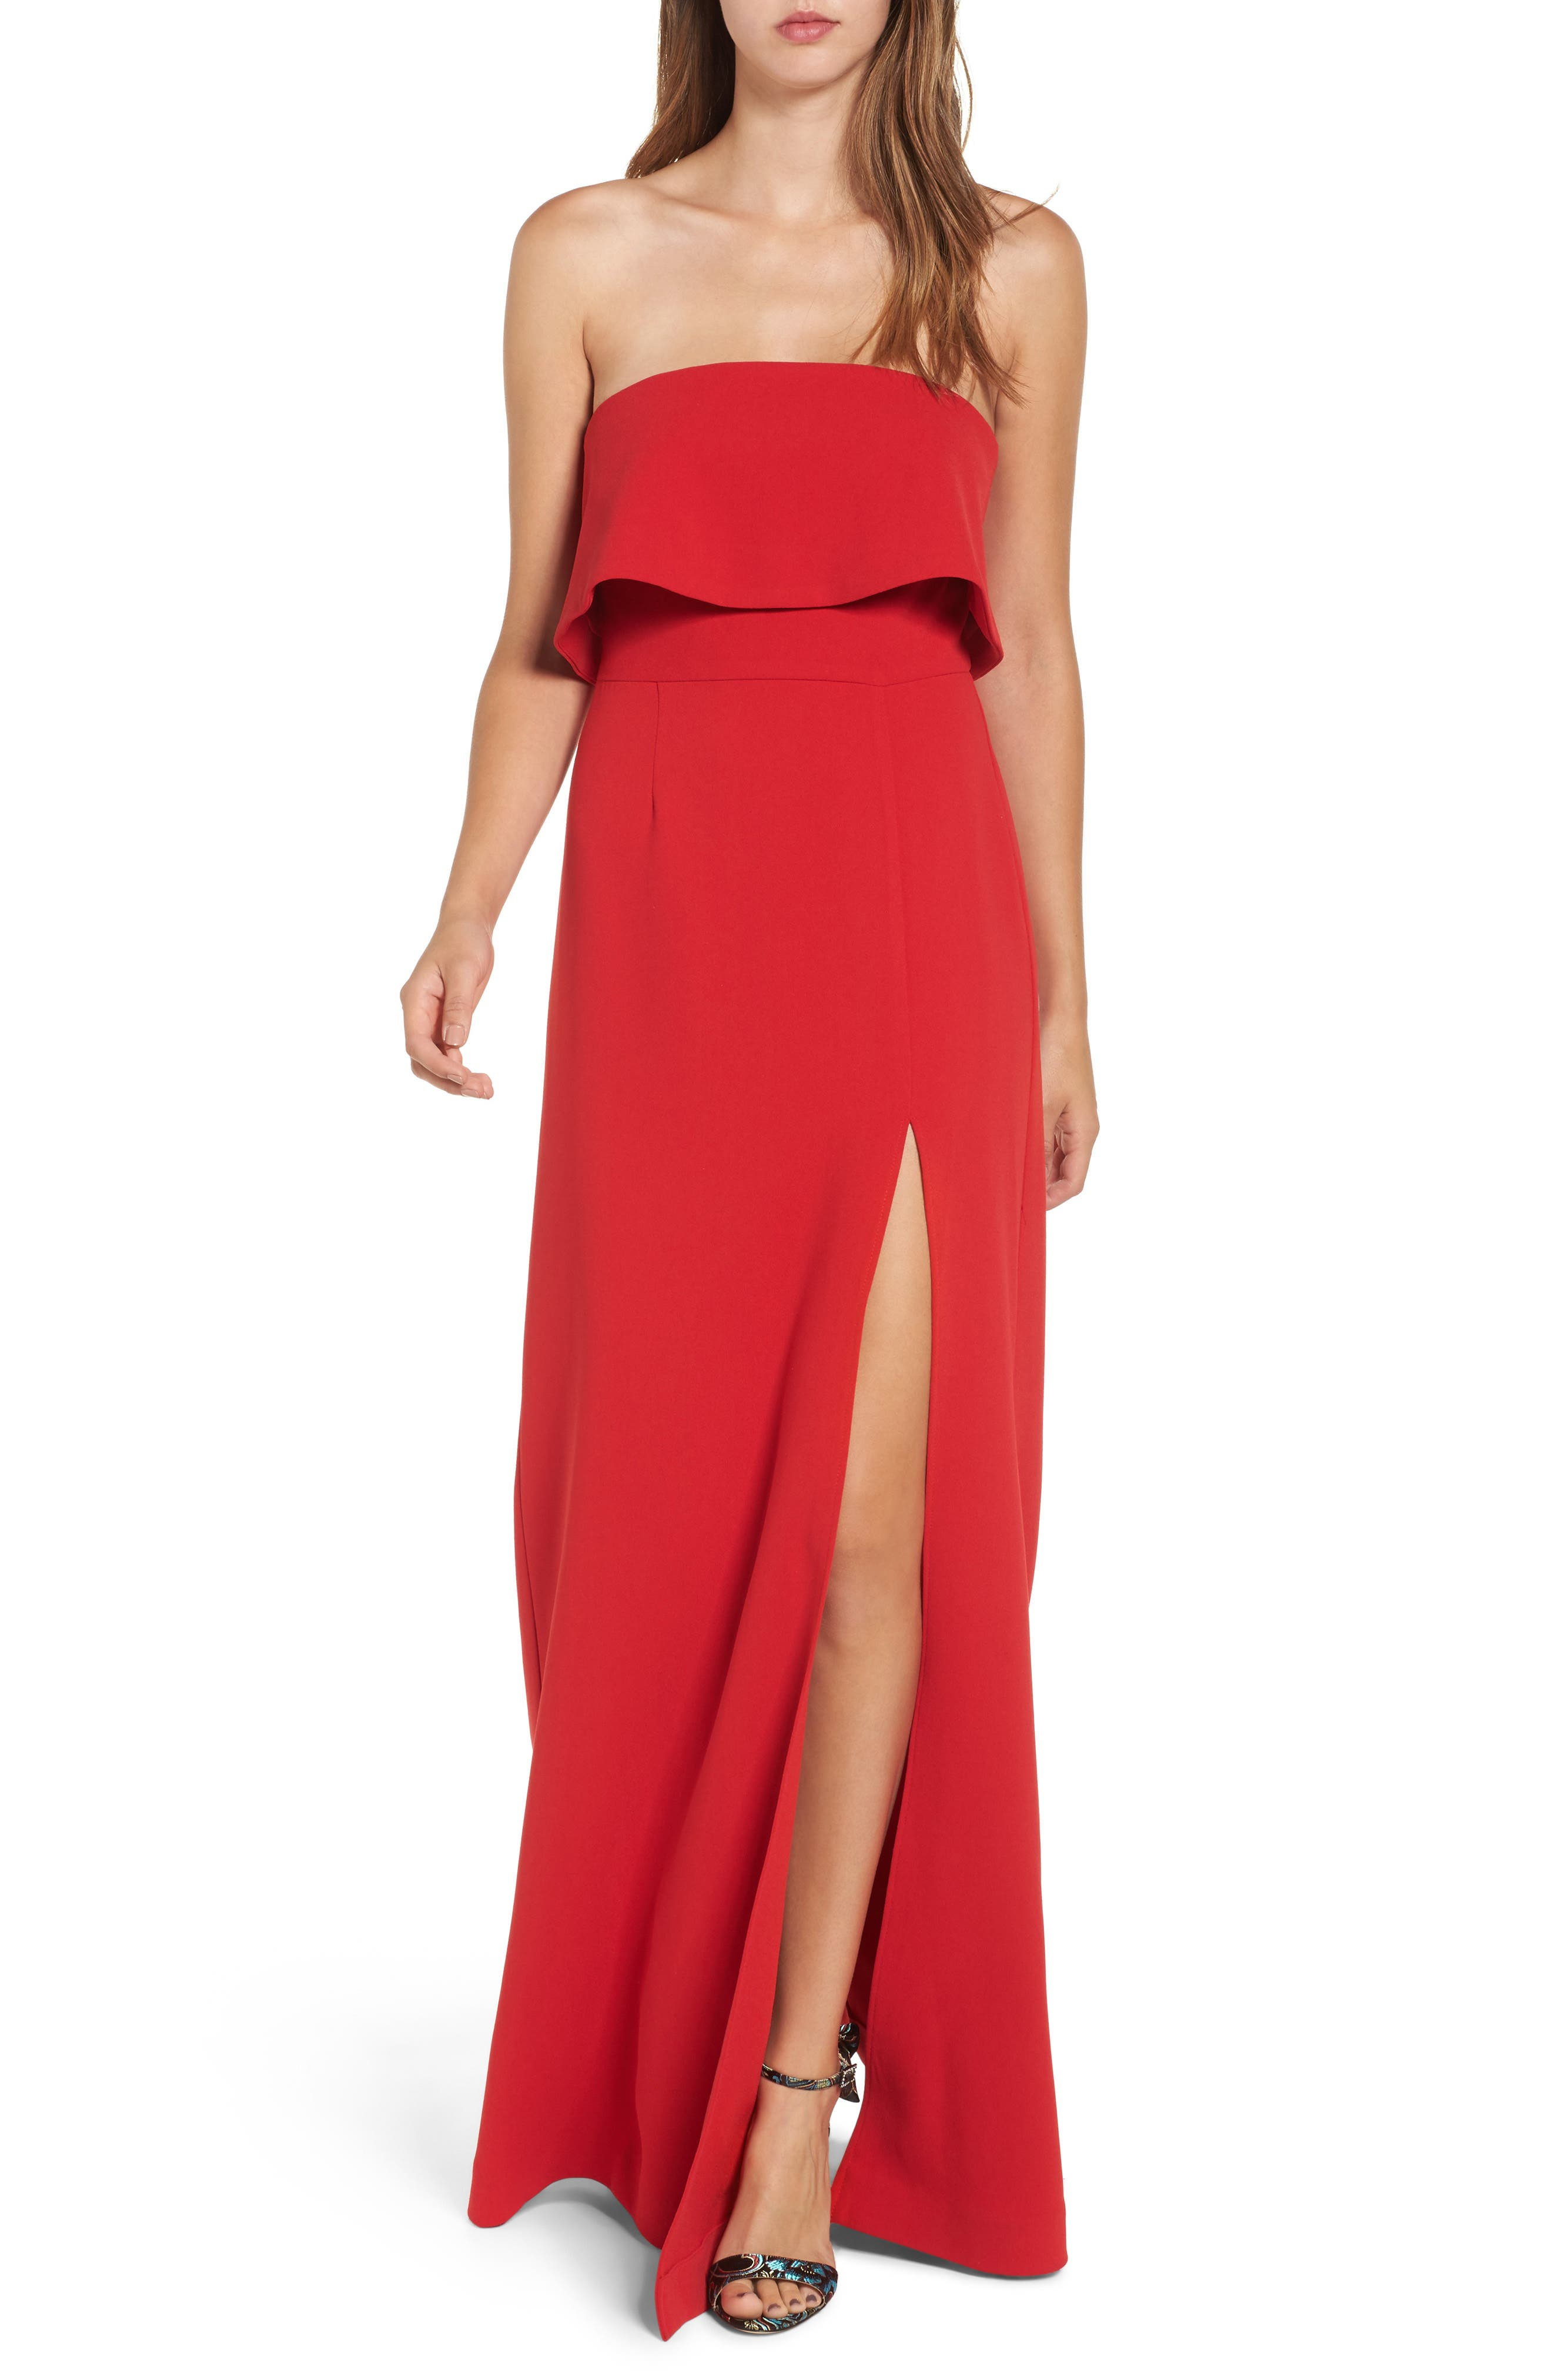 Lovers & Friends Anzen Strapless Gown, Main, color, 600